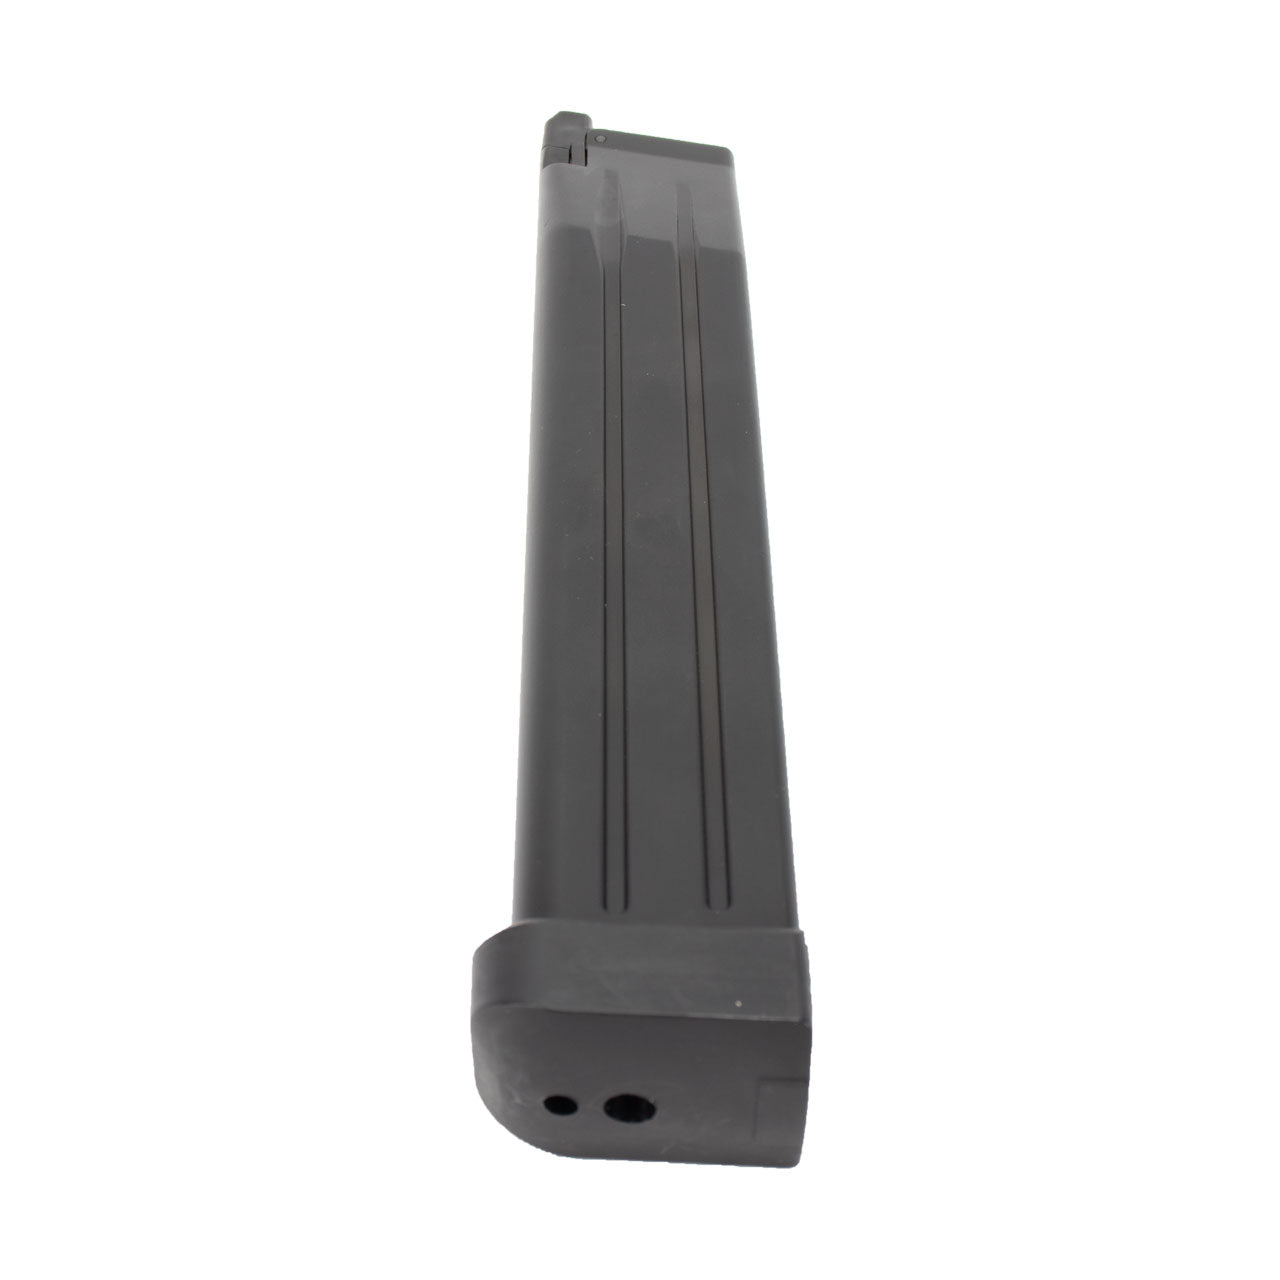 WE 52rd Extended Magazine for WE Hi-Capa Airsoft GBB Gas Blowback Pistols